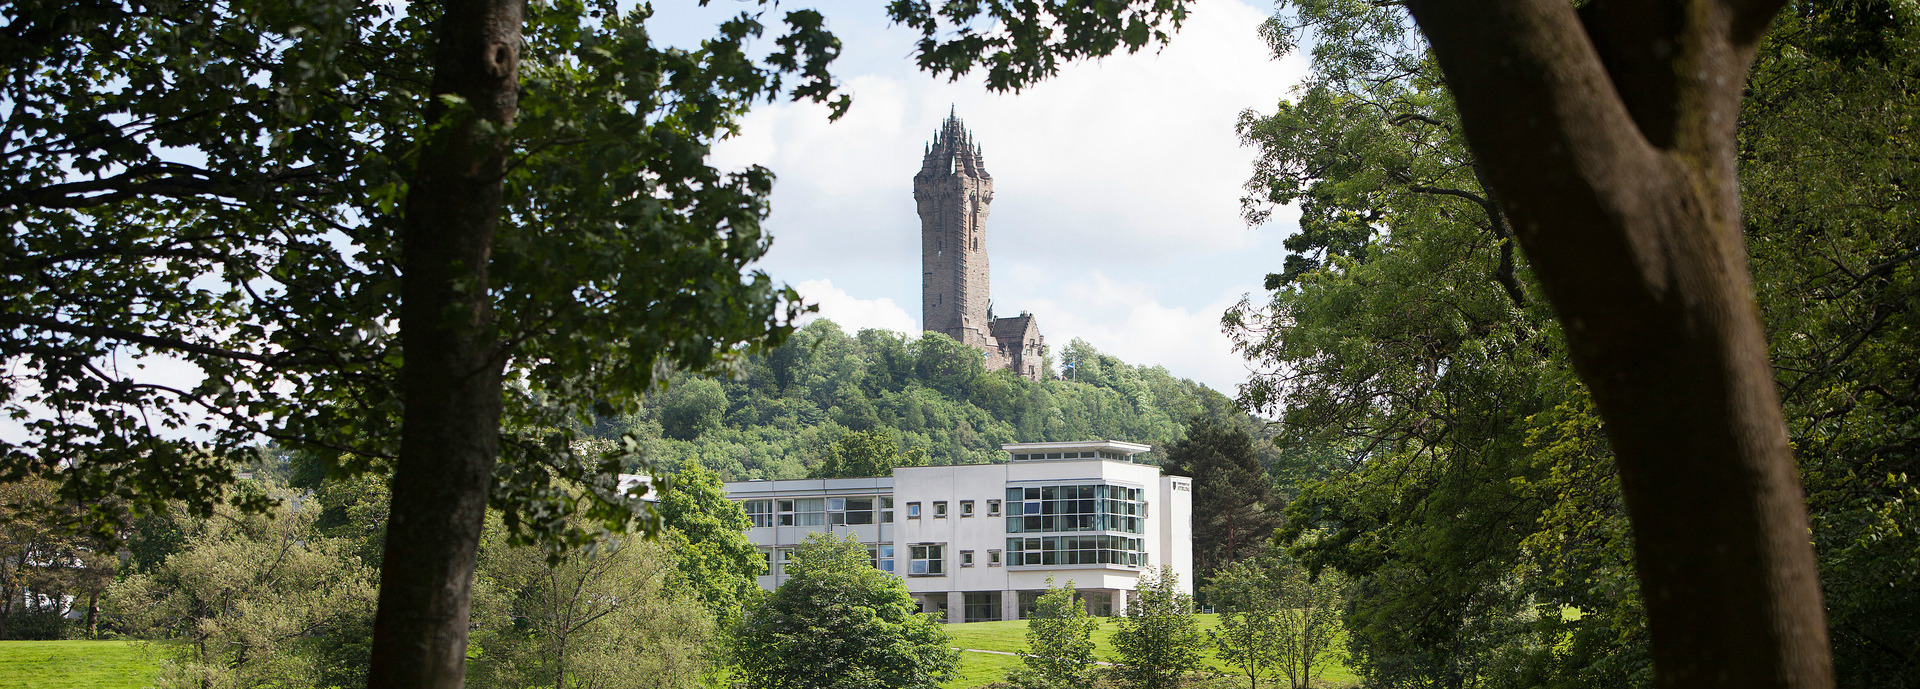 Image of the campus and Wallace Monument